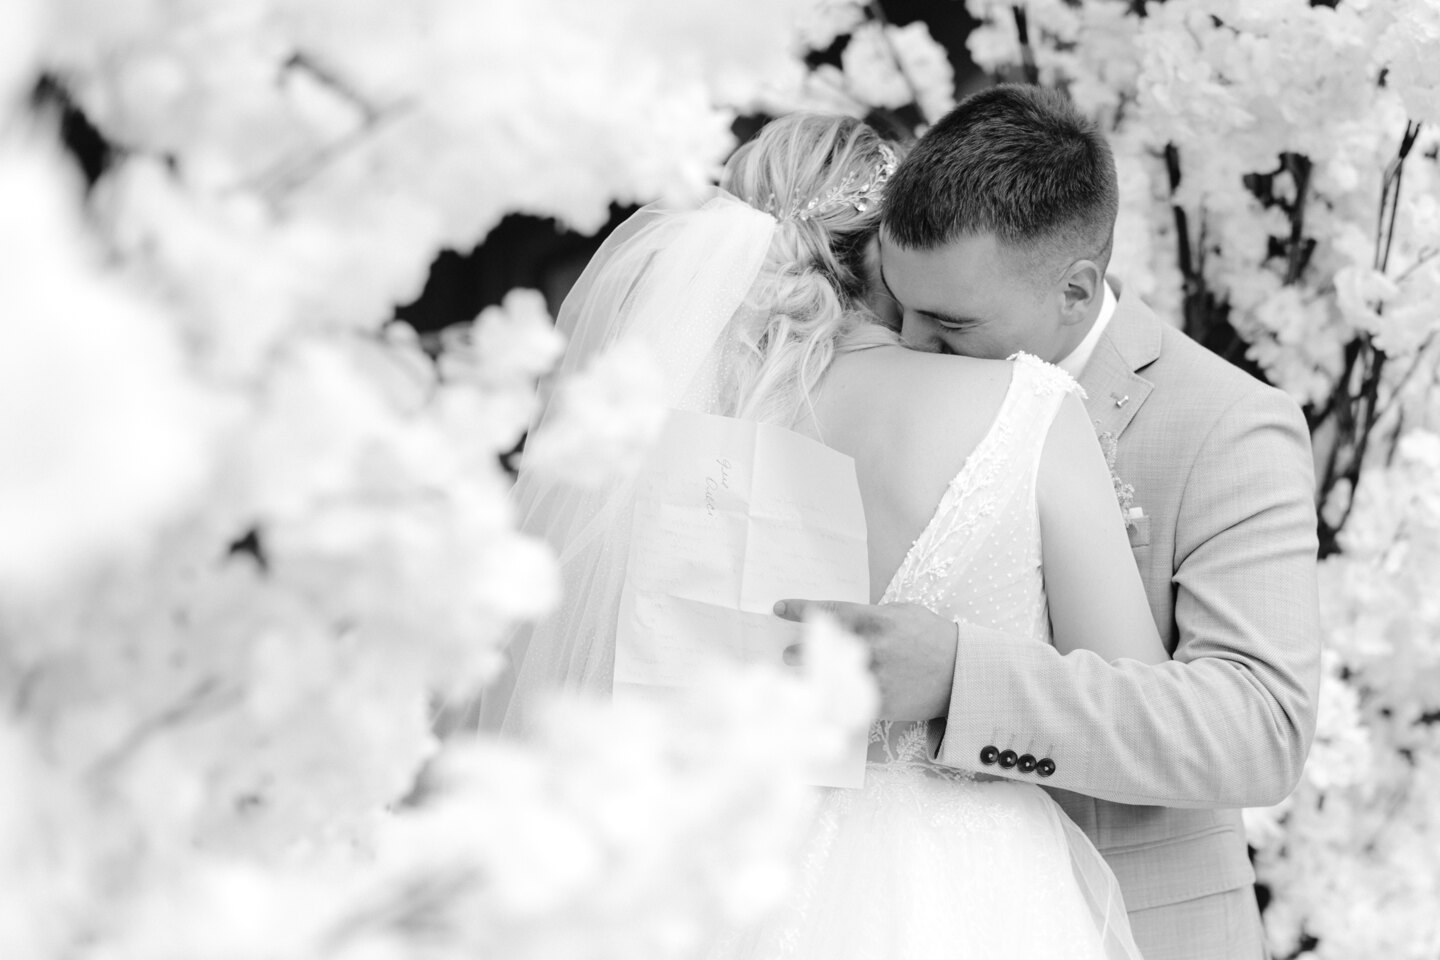 Wedding Photographer in Italy: The groom sincerely hugs his bride, after the words of the vow, which are written on a sheet in his hands